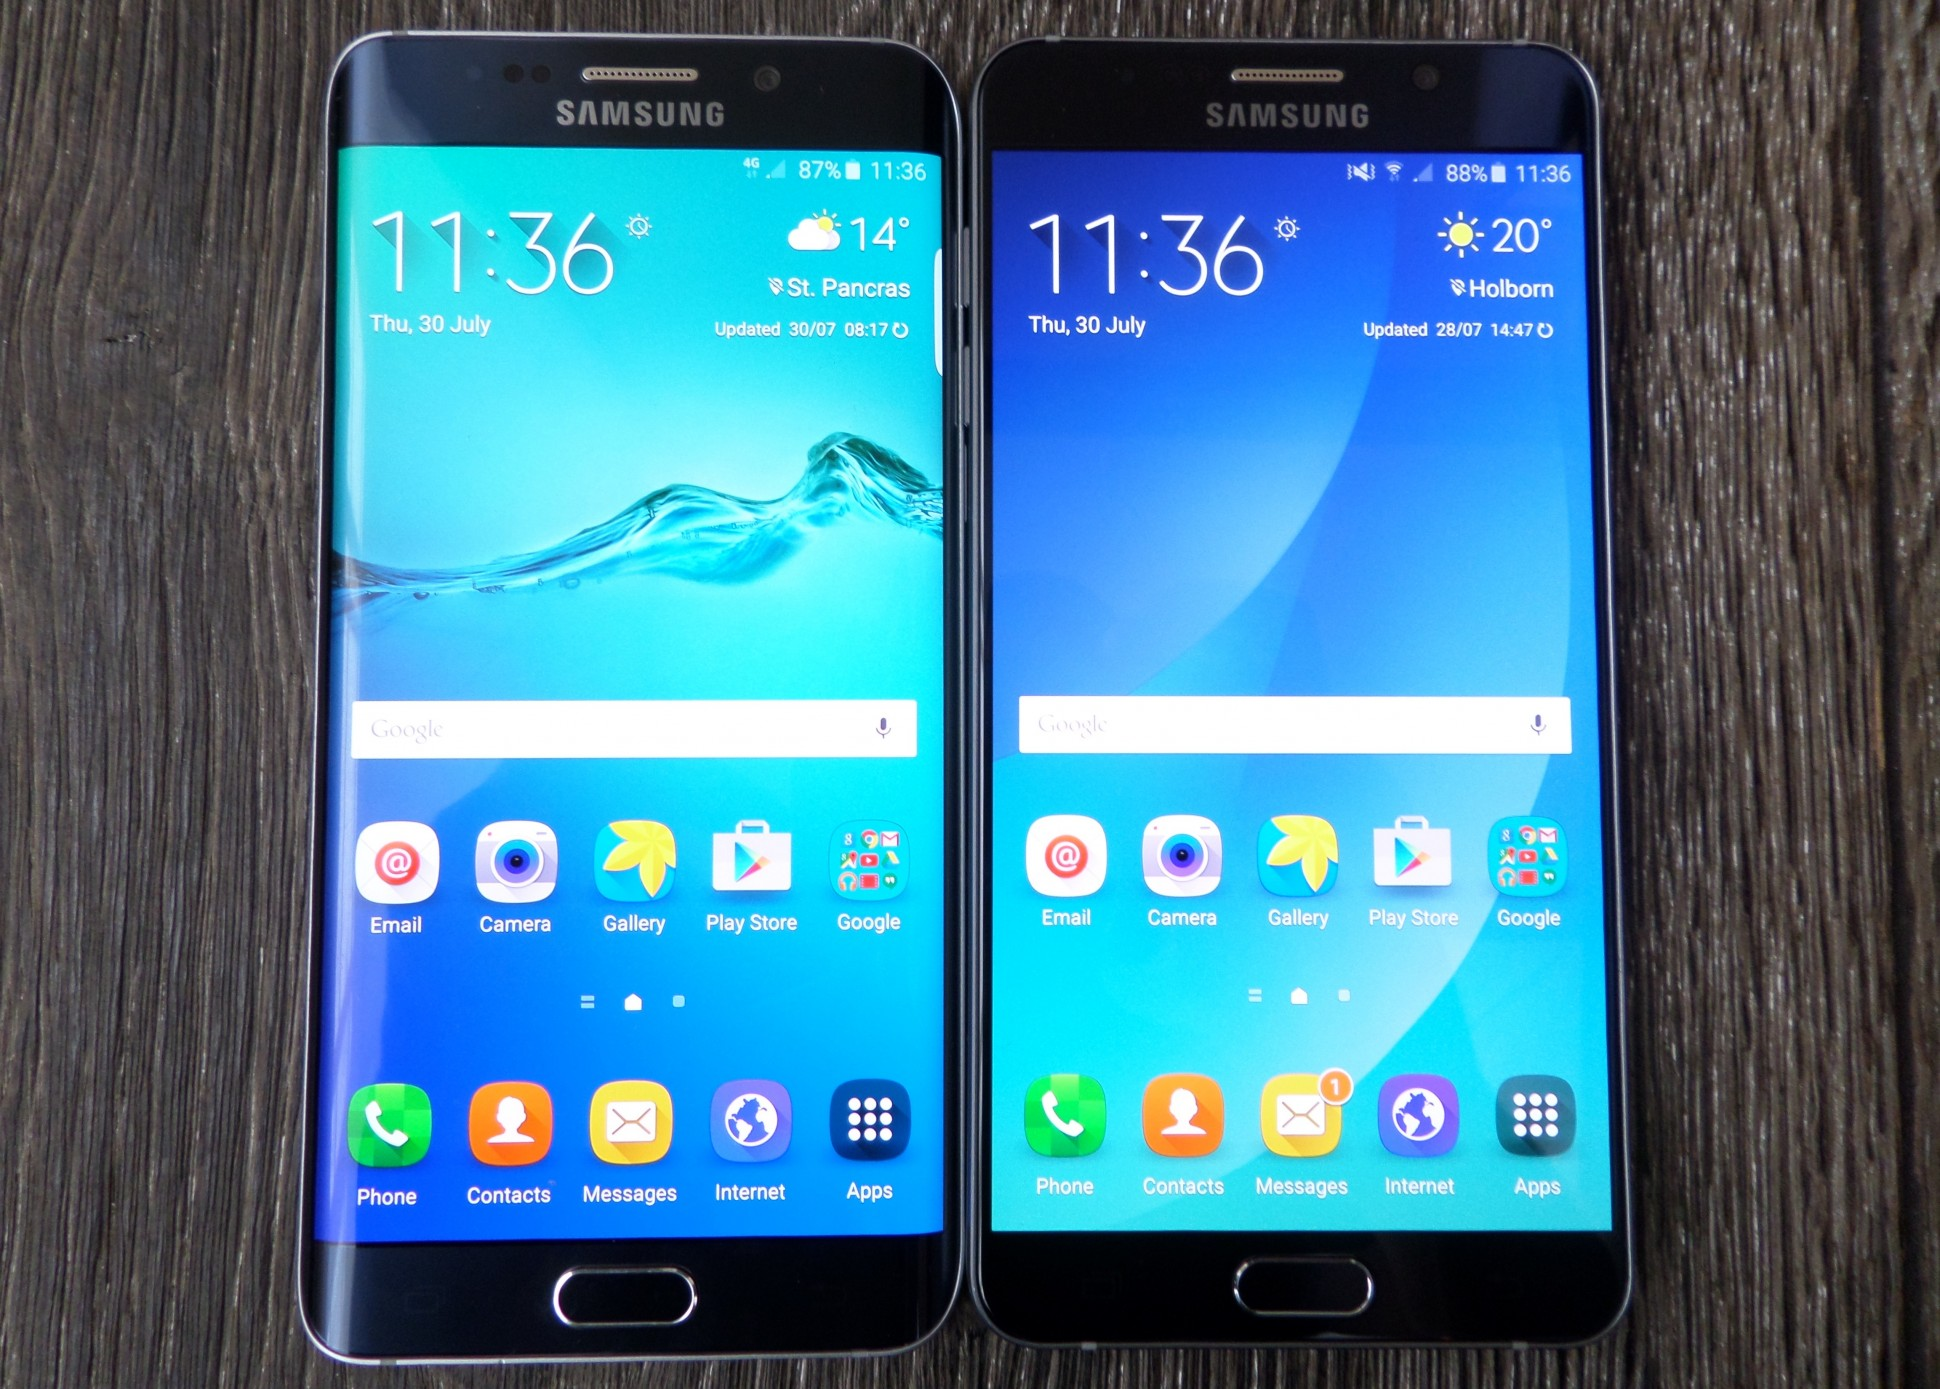 Samsung Galaxy S7 vs Galaxy Note 5 2